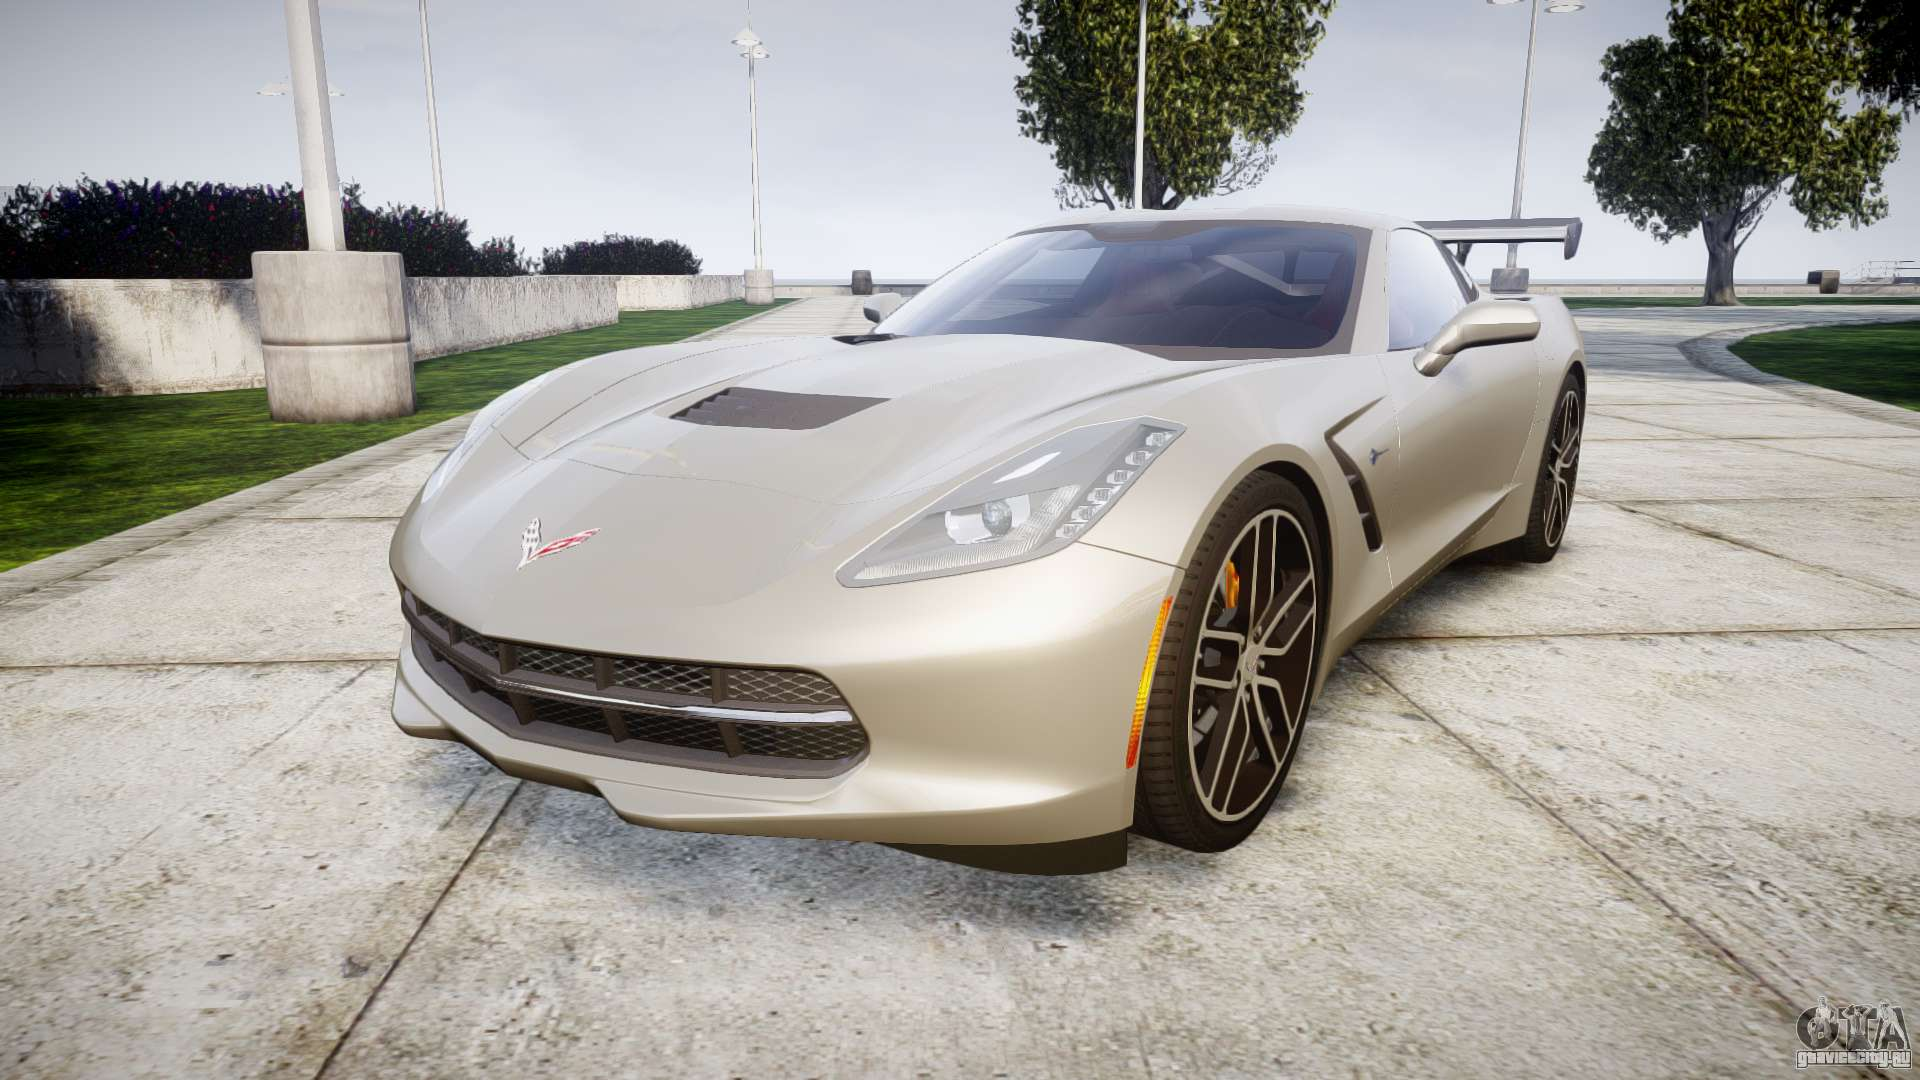 chevrolet corvette c7 2014 tuning gta 4. Black Bedroom Furniture Sets. Home Design Ideas